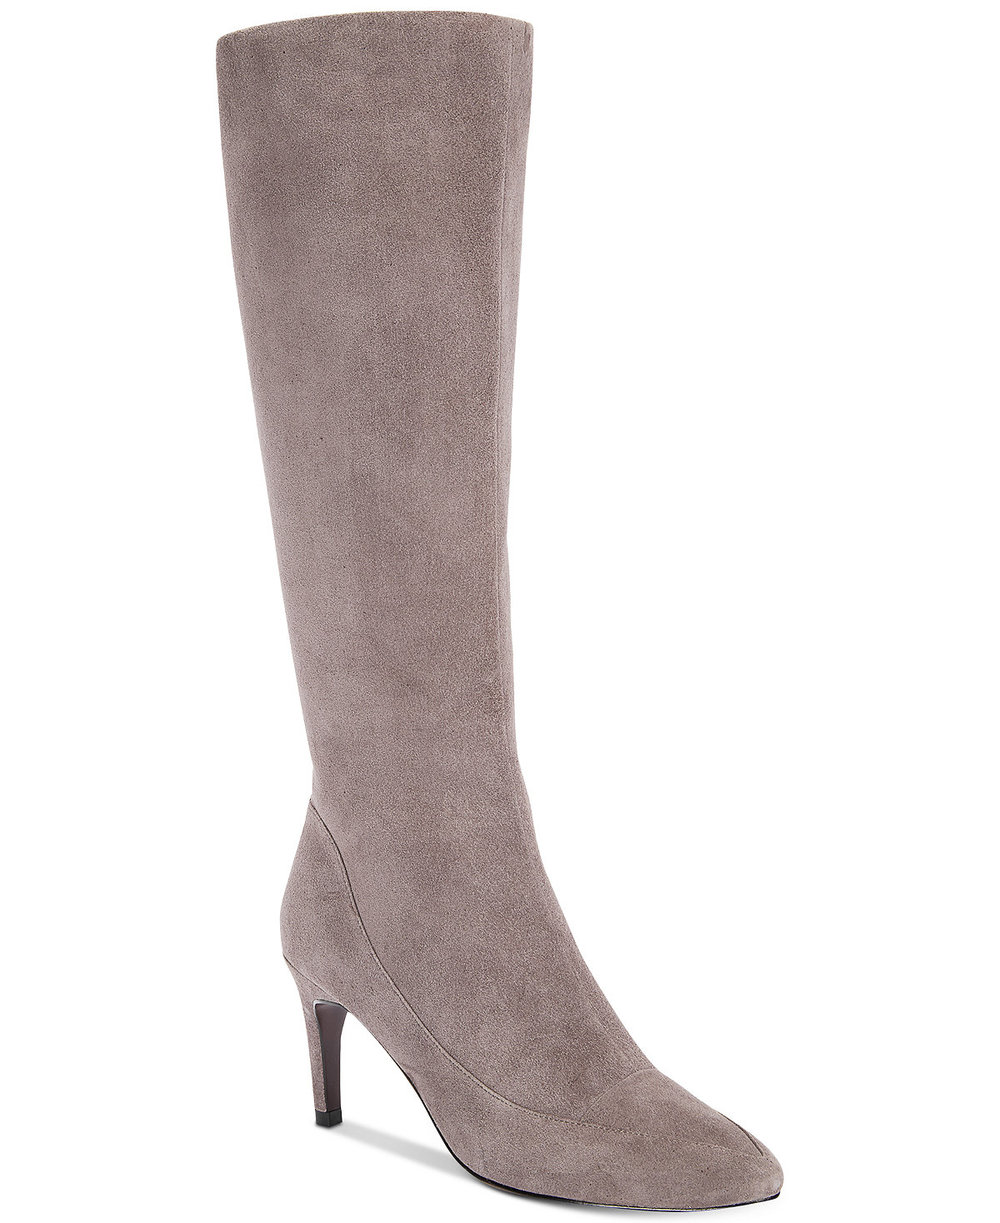 "https://www.macys.com/shop/product/cole-haan-arlean-boots?ID=5023719&CategoryID=25122&swatchColor=Black%20Suede%20Suede%20Suede#fn=SIZE%3DWOMEN_SHOE_SIZE_T%3A7.5%26BOOTS_TYPE%3DDress Boots%26BOOT_HEIGHT%3DTall%26COLOR%3DBlack;;Blue%26HEEL%3DLow 1-2"";;Mid 2-3""%26sp%3D1%26spc%3D31%26ruleId%3D78